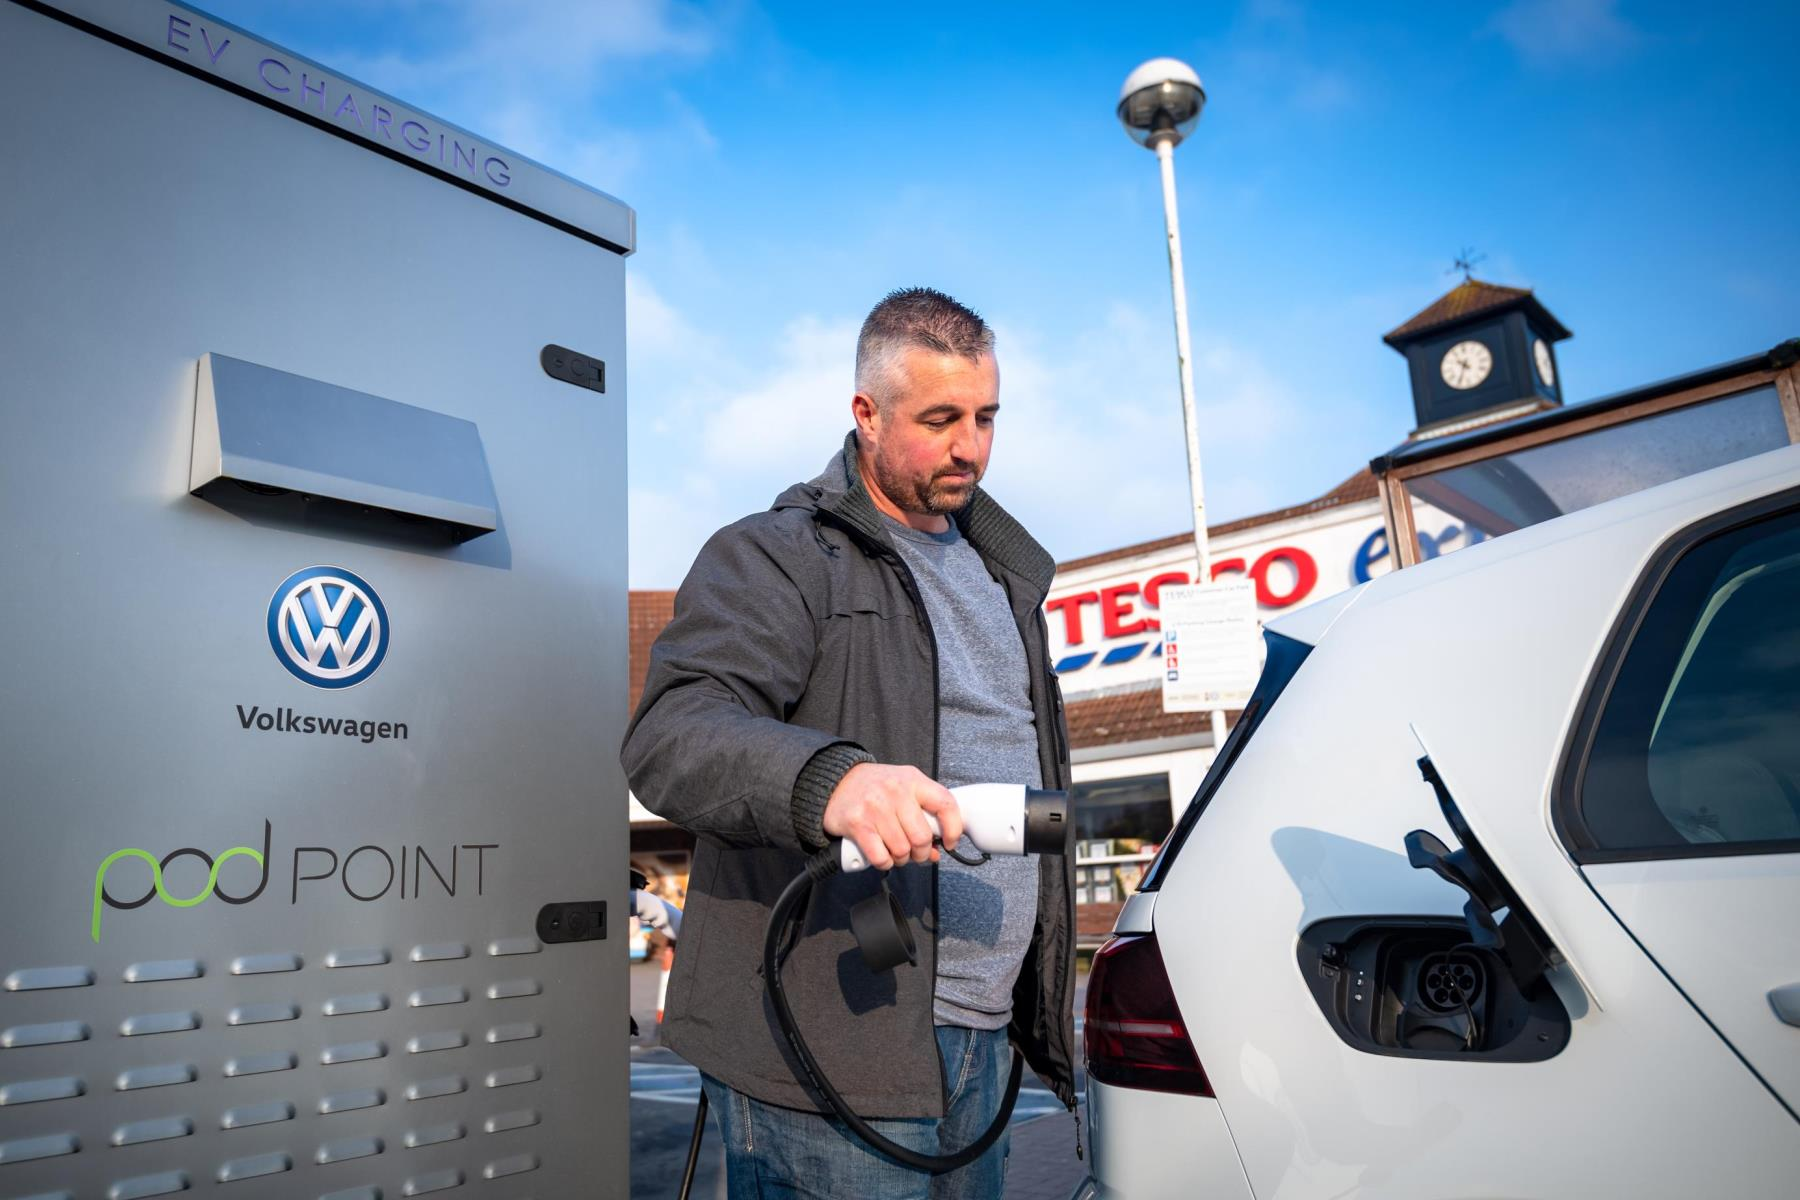 Volkswagen and Tesco chargepoint partnership